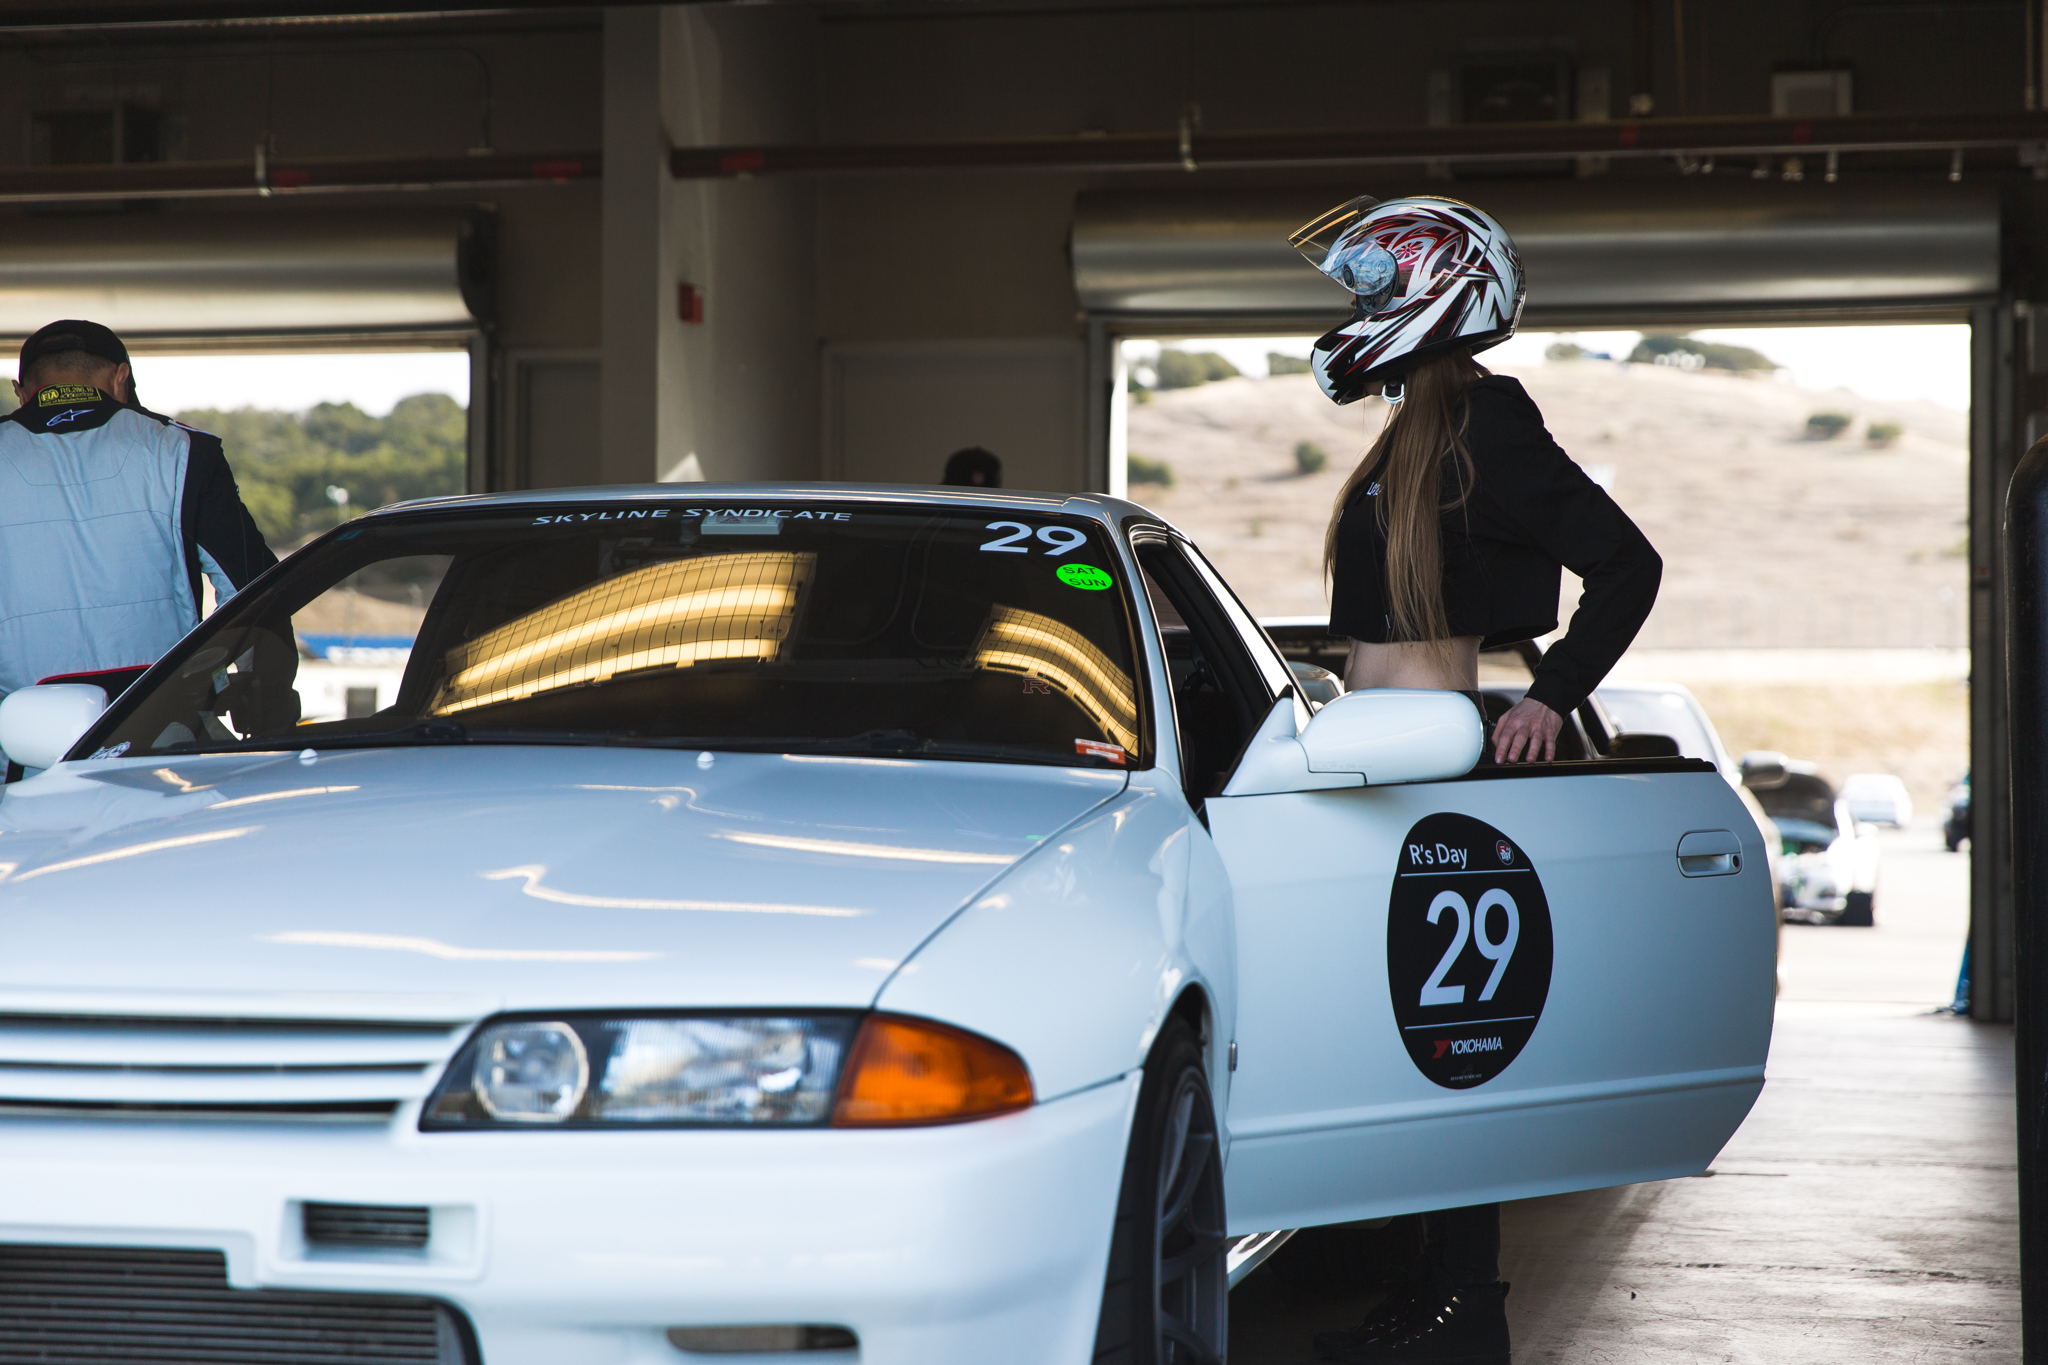 Stay_Driven_Rs_Day-43.jpg